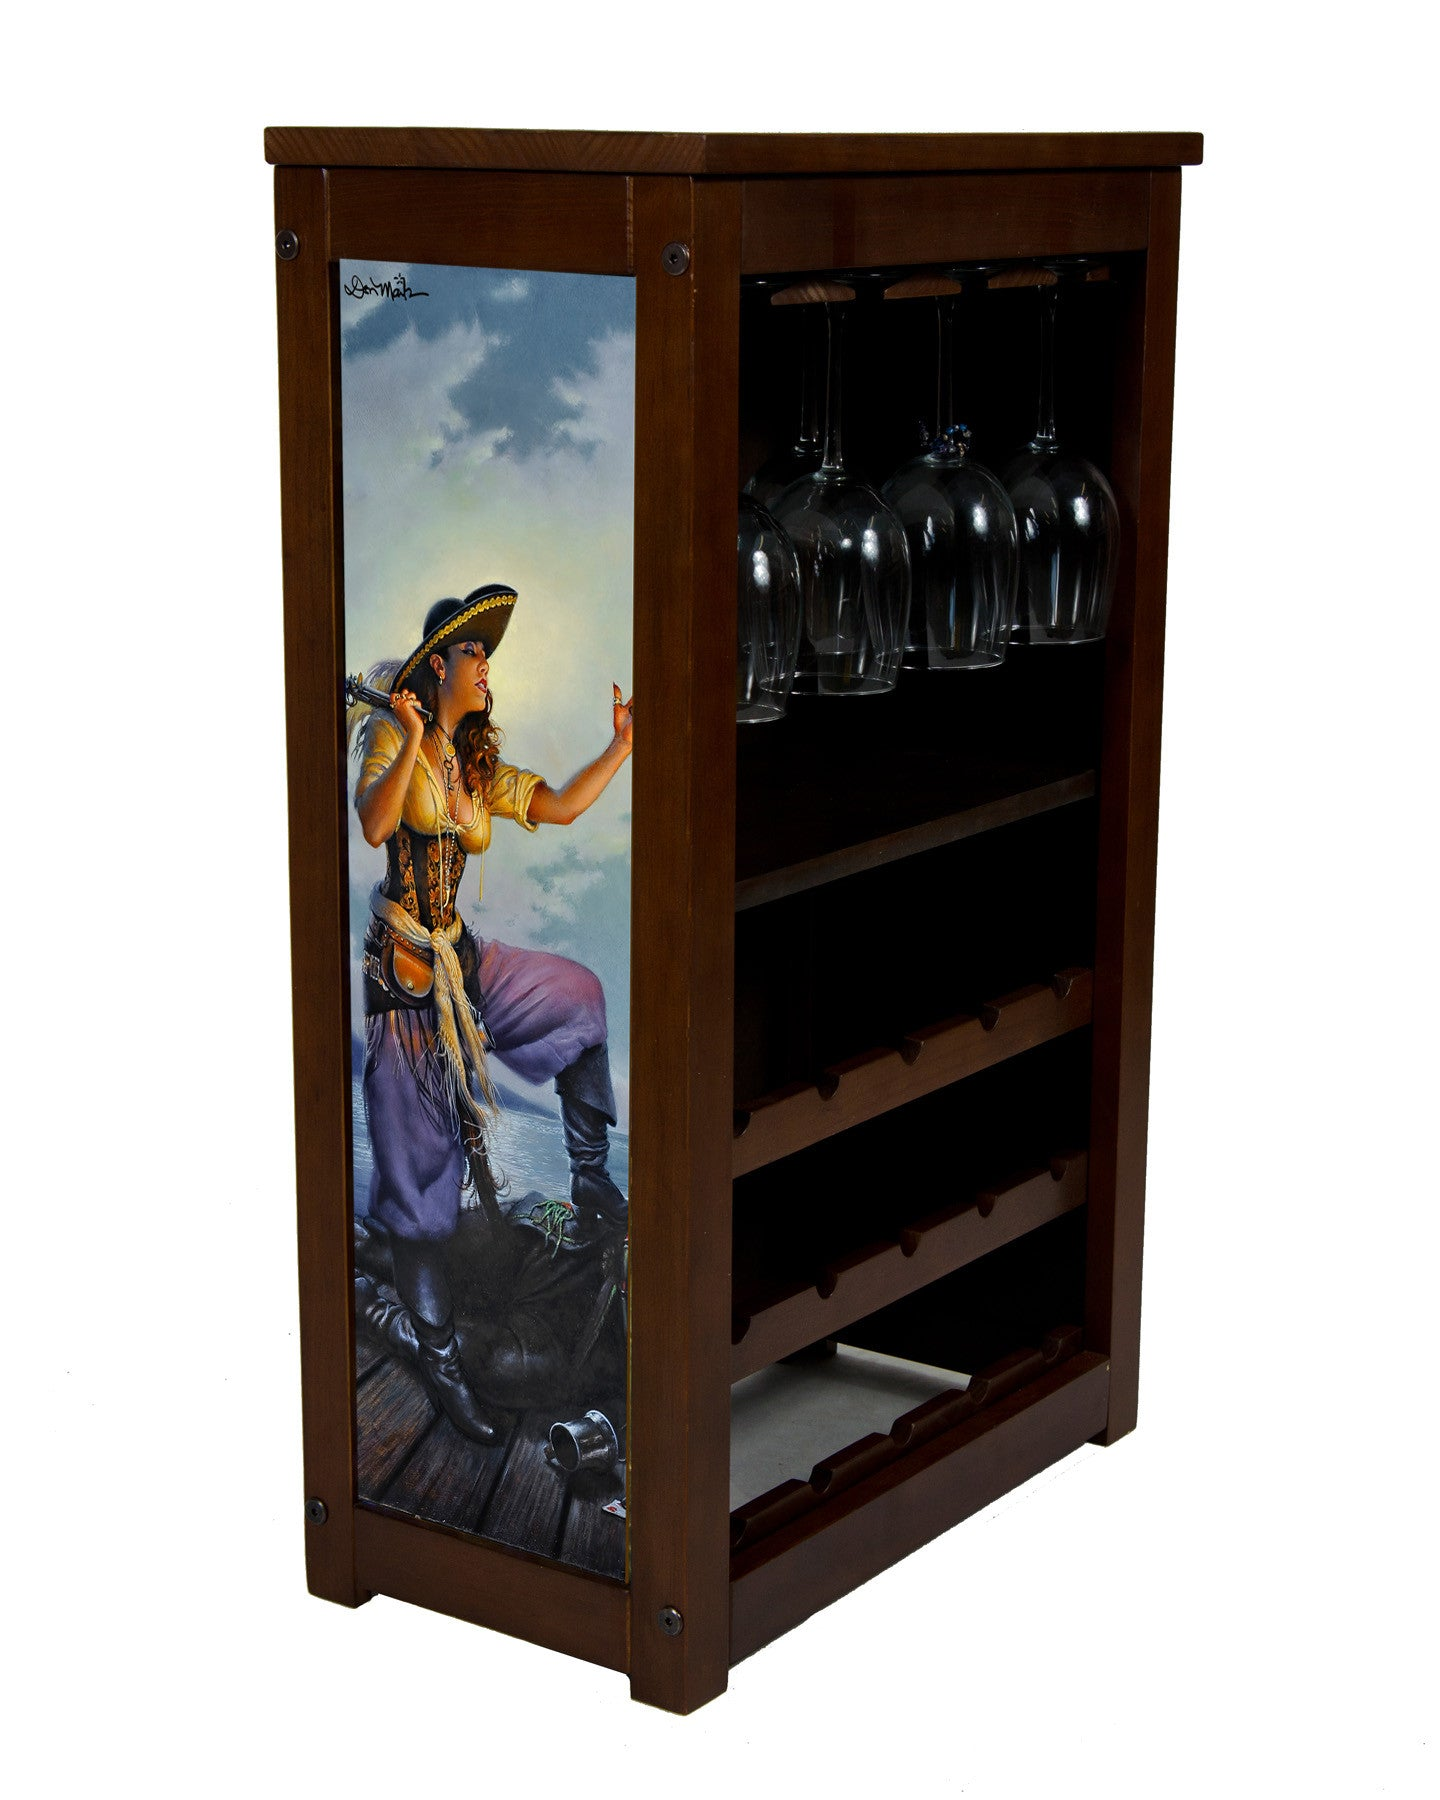 Booty Wine Cabinet by Don Maitz